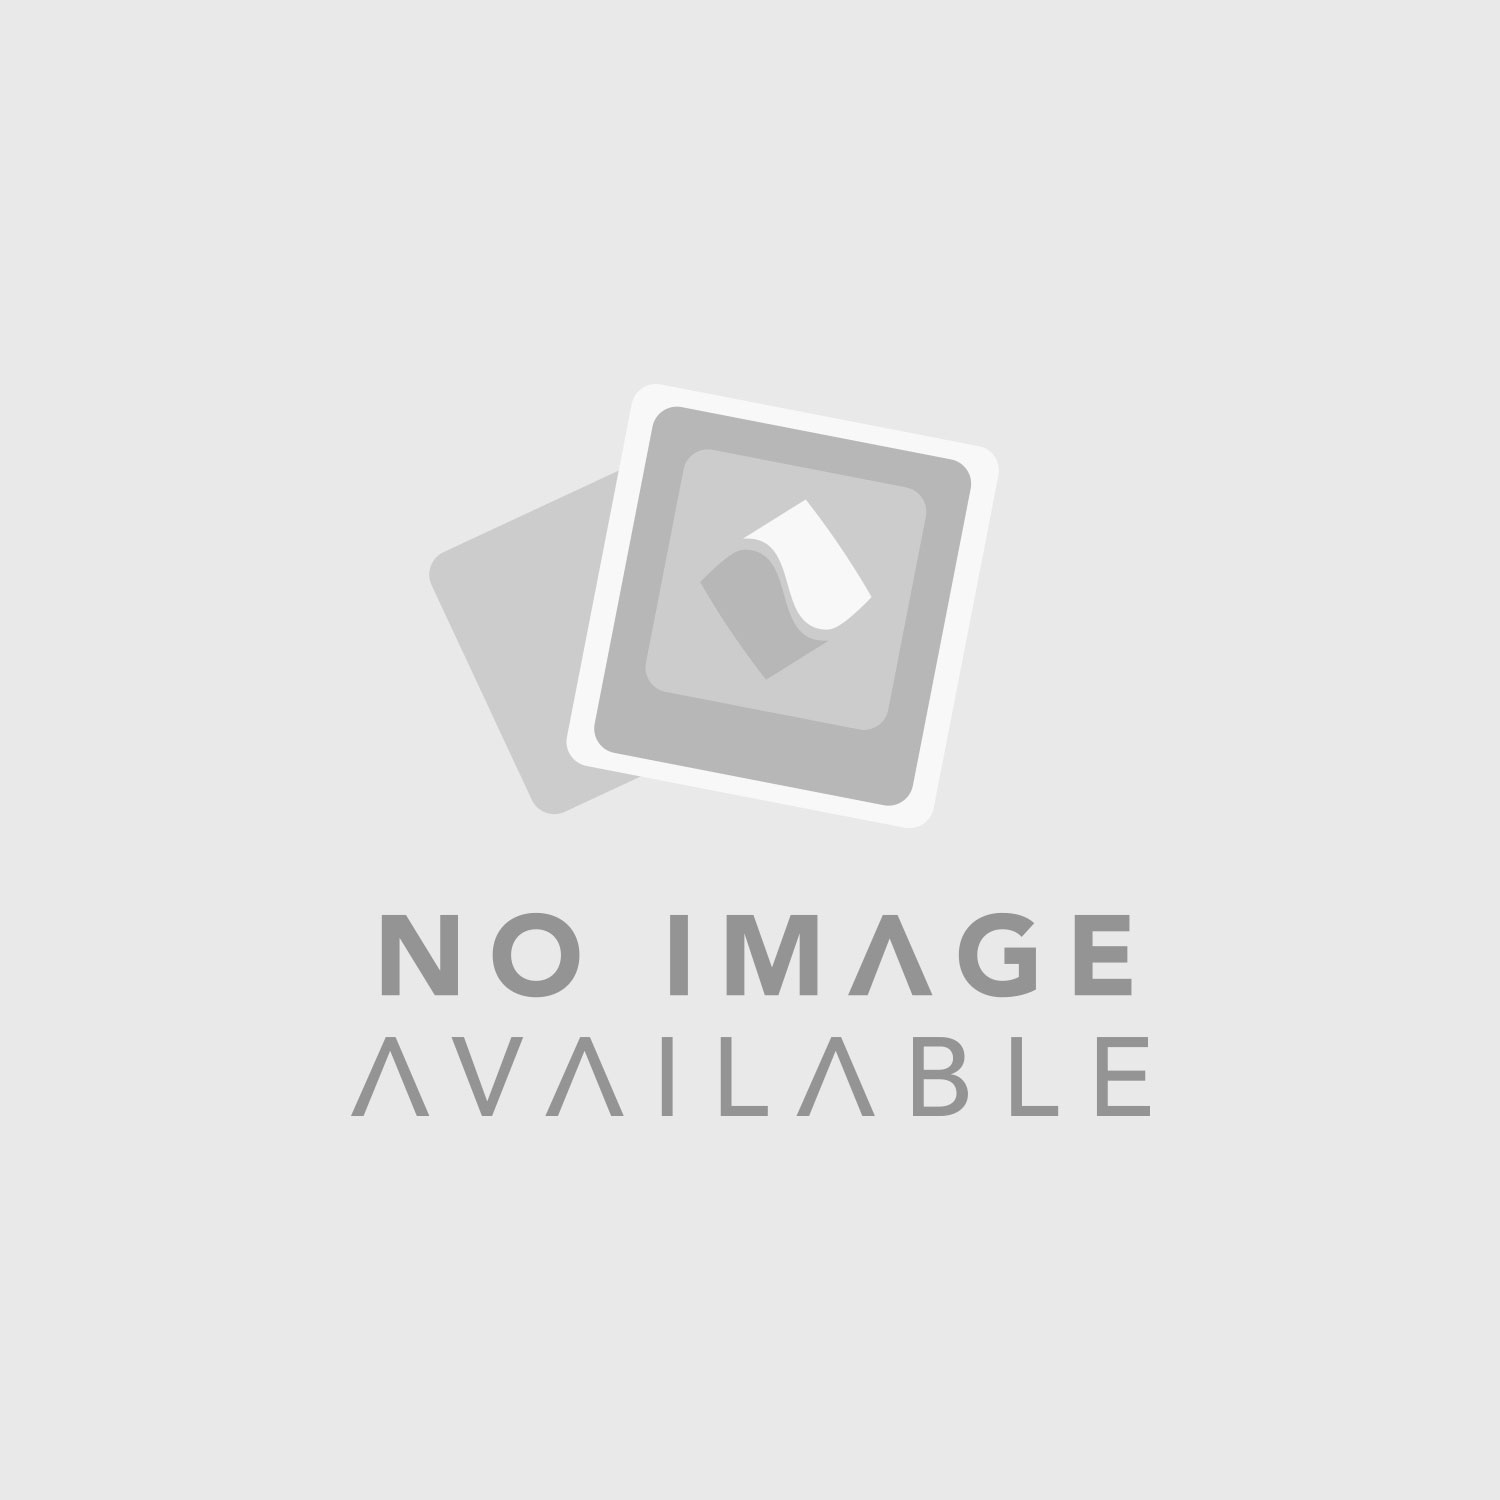 Williams Sound HED 024 Folding Headphones (Stereo)